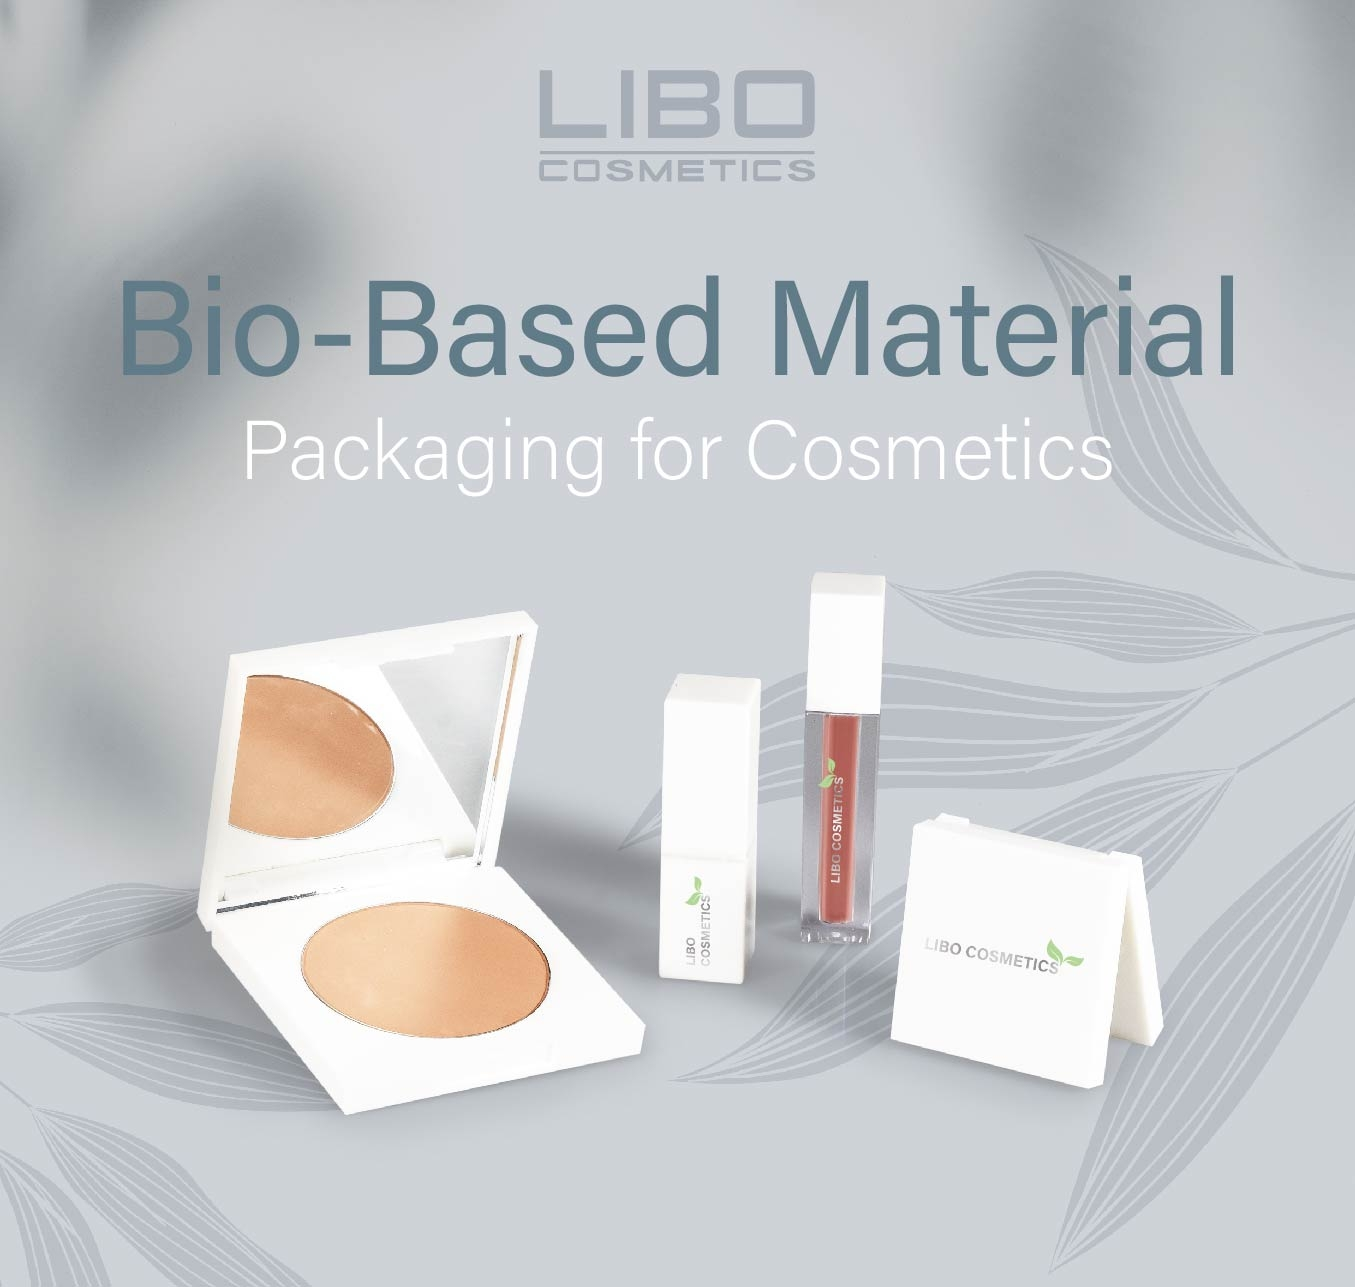 Sustainable Bio-Based Material Packaging for Cosmetics!